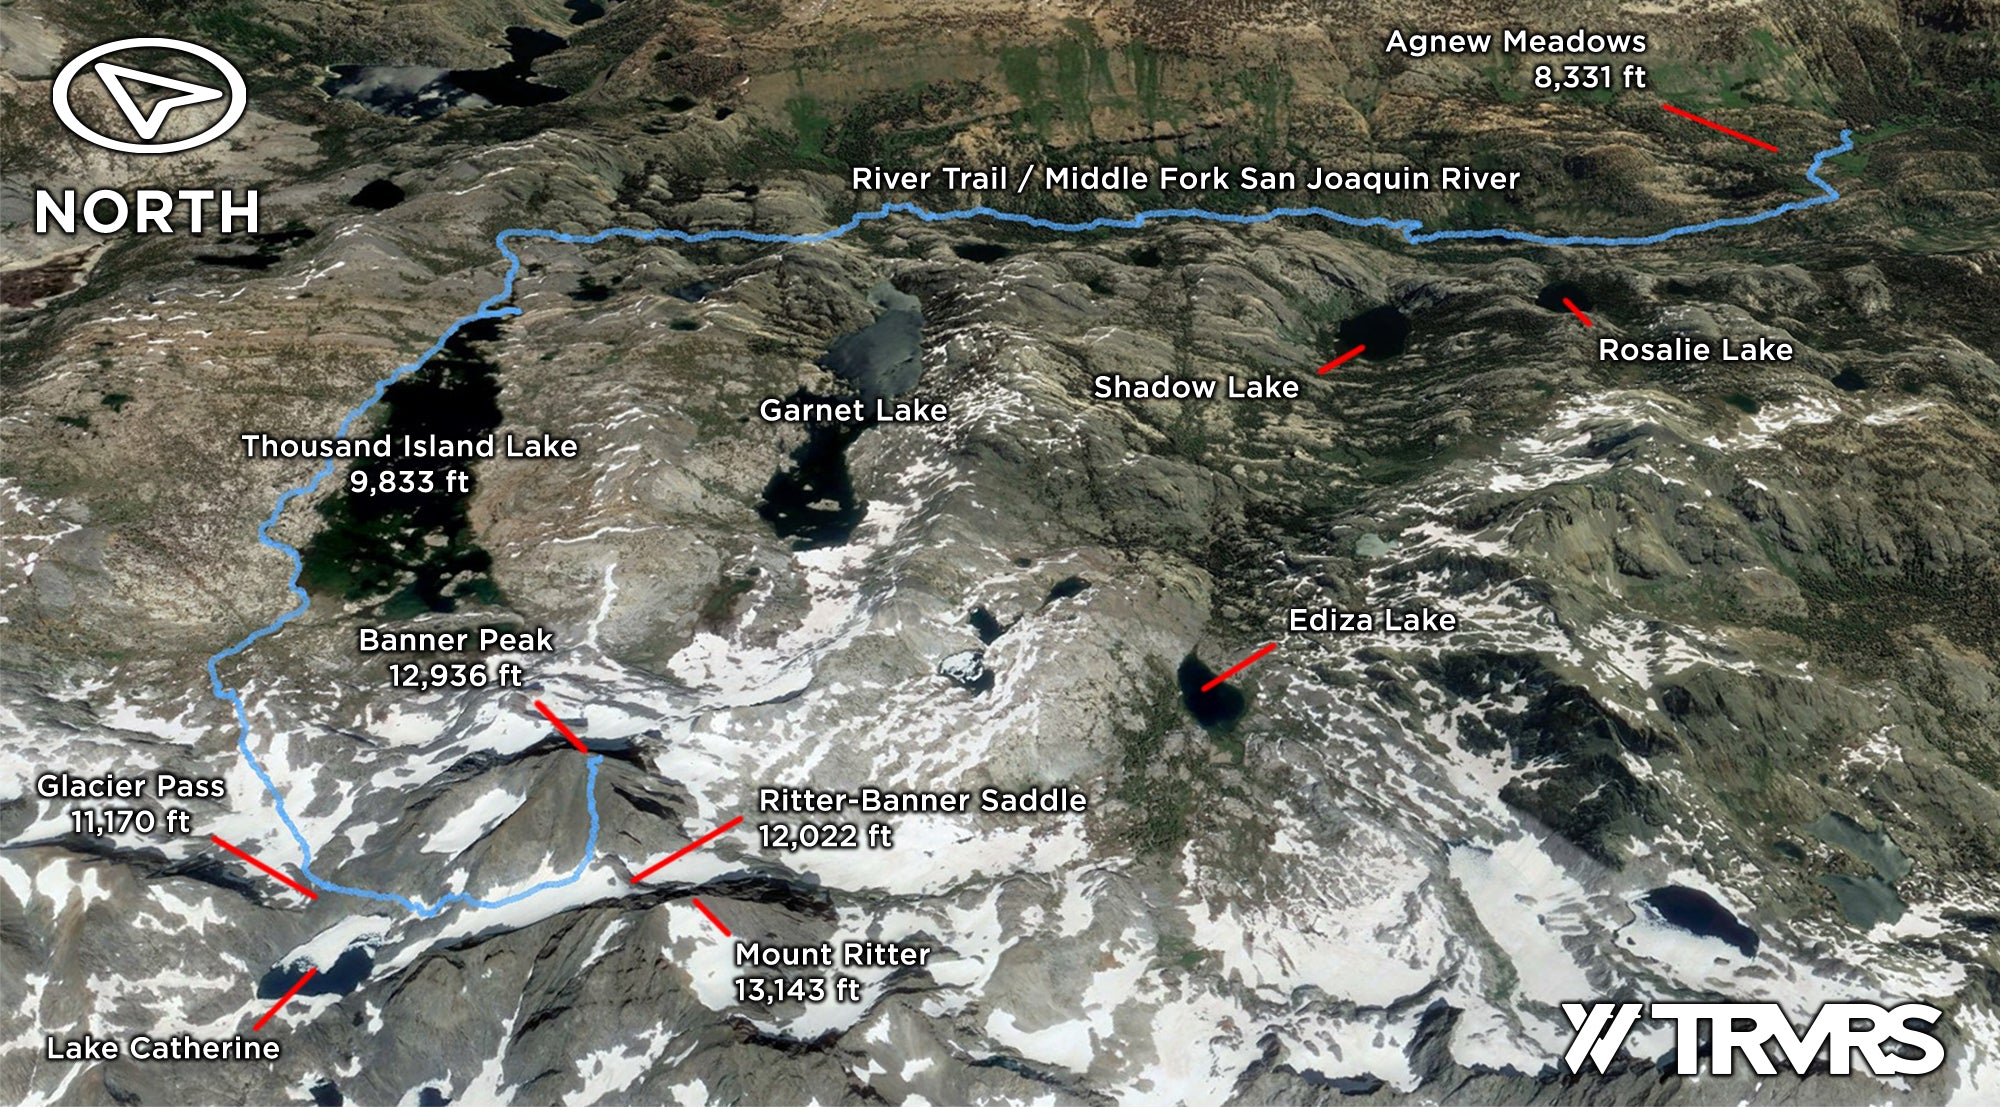 Google Earth Overview - Banner Peak via Lake Catherine, Ritter-Banner Saddle, Glacier Pass, Thousand Island Lake, Pacific Crest Trail, Middle Fork San Joaquin River, River Trail, Agnew Meadows, Ansel Adams Wilderness, Mammoth Lakes, Sierra Nevada Mountains | TRVRS Apparel